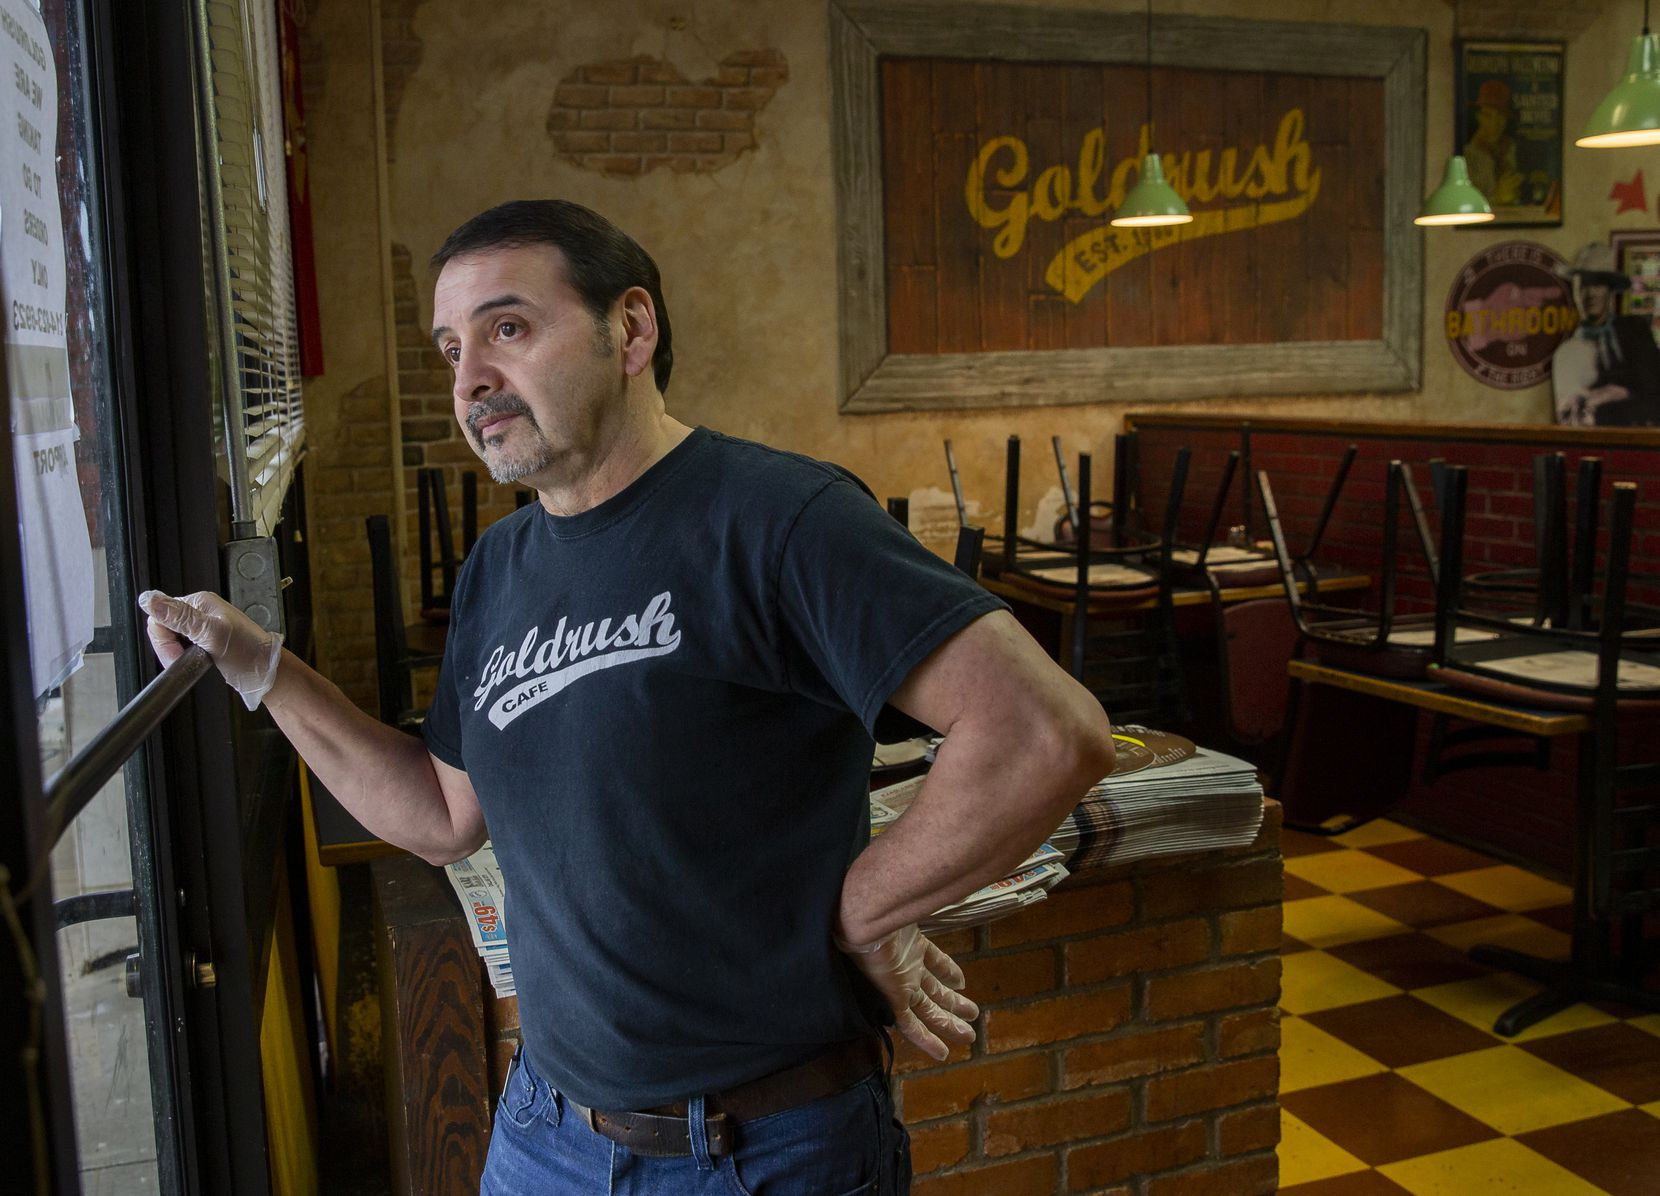 Goldrush Cafe owner George Sanchez waited for customers on March 16 in Dallas. Restaurants' business has cratered during the coronavirus pandemic.